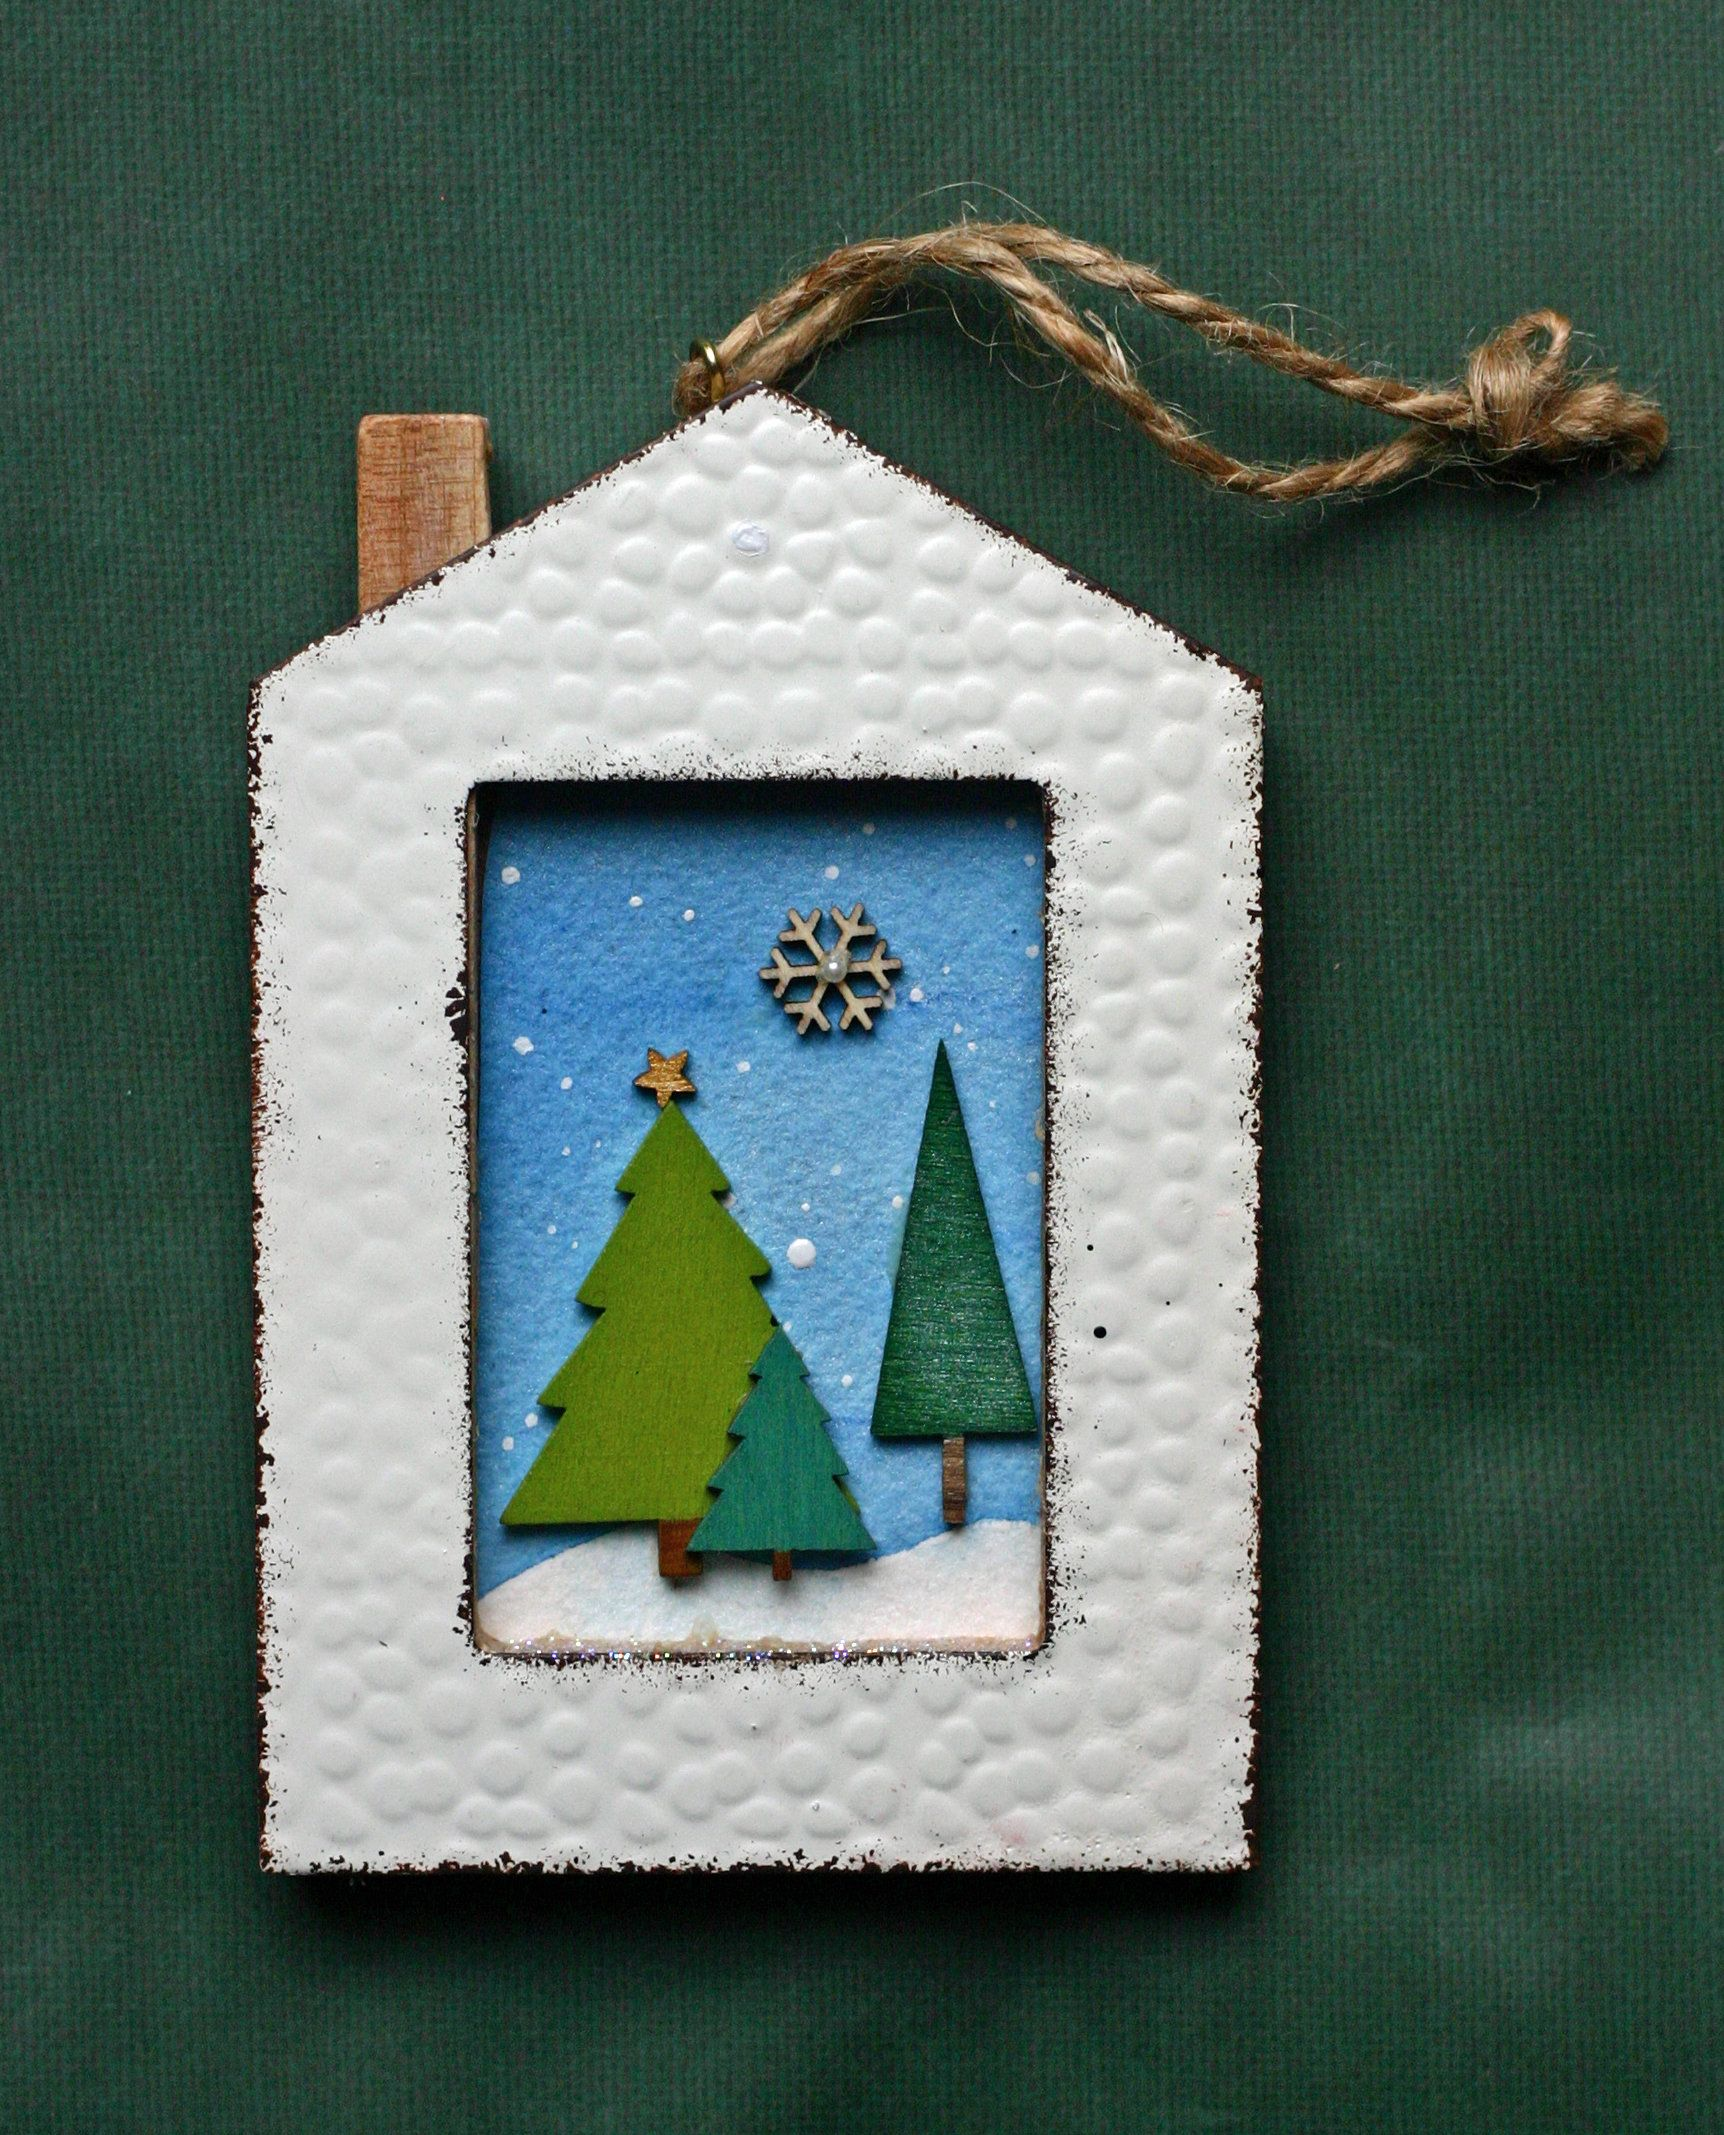 Christmas Ornament House Evergreen Trees Snow Winter Etsy Ornament Frame Christmas Ornaments Wooden Ornaments